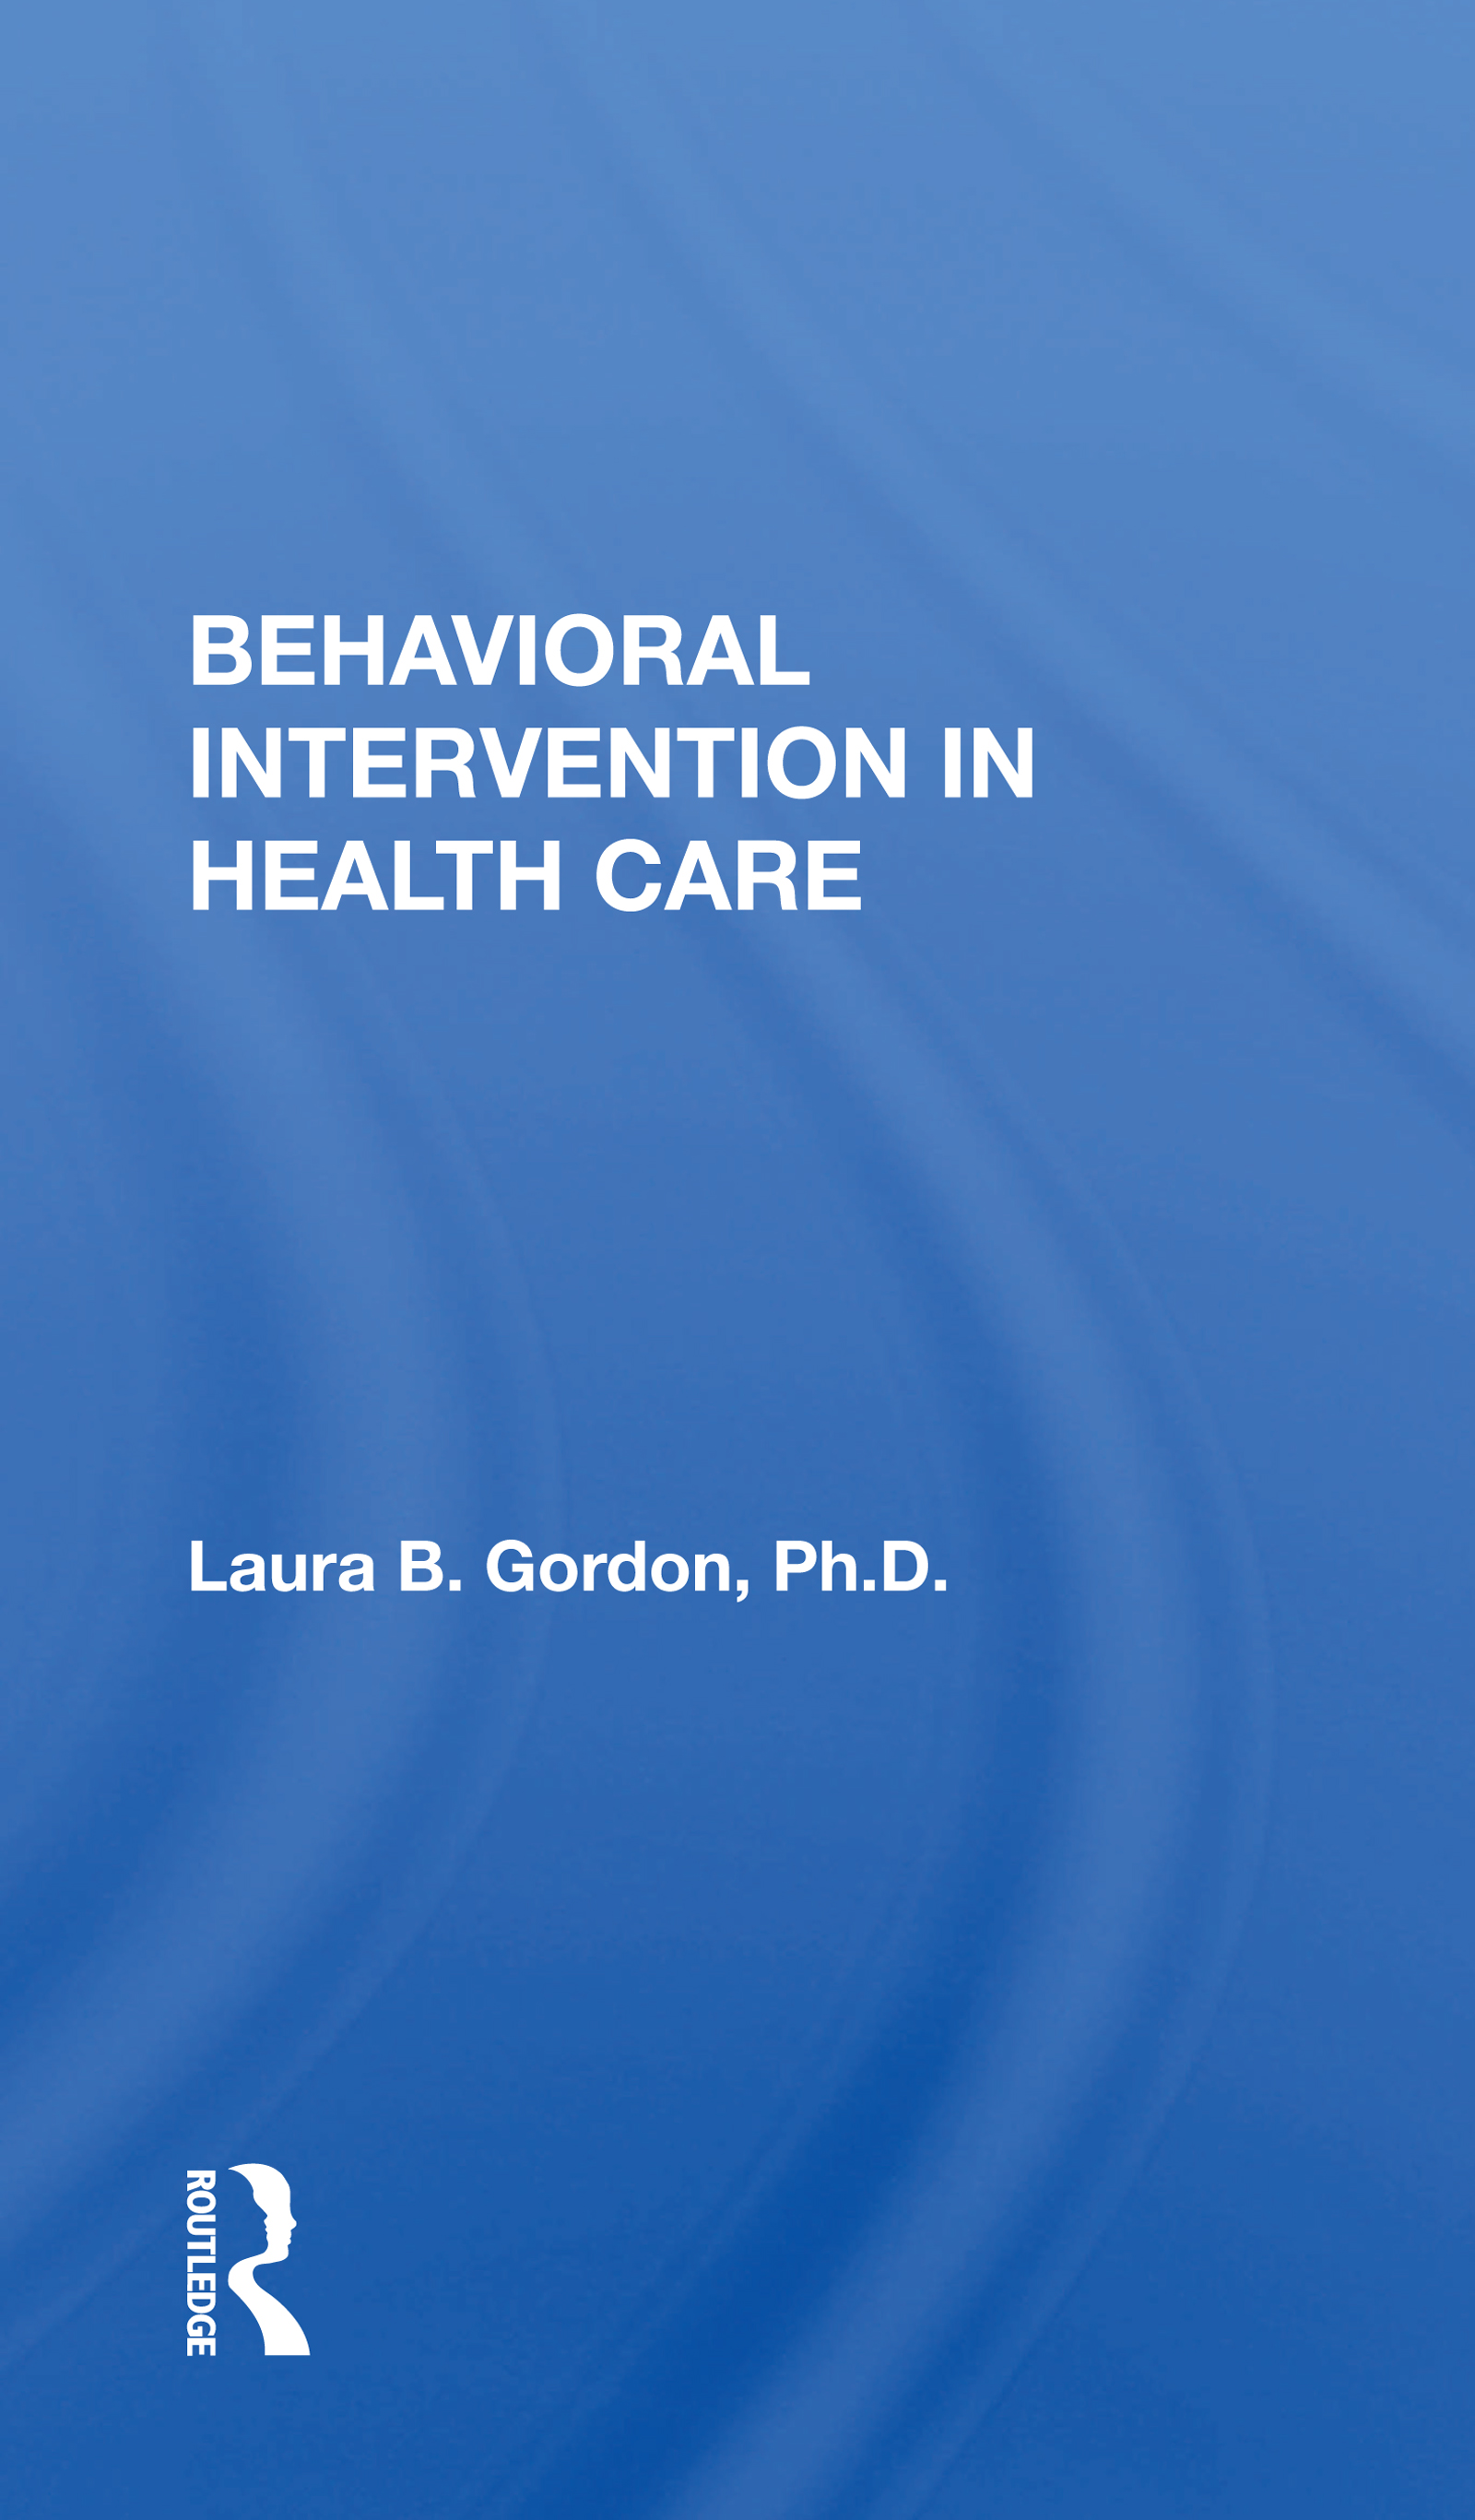 Behavioral Intervention in Health Care